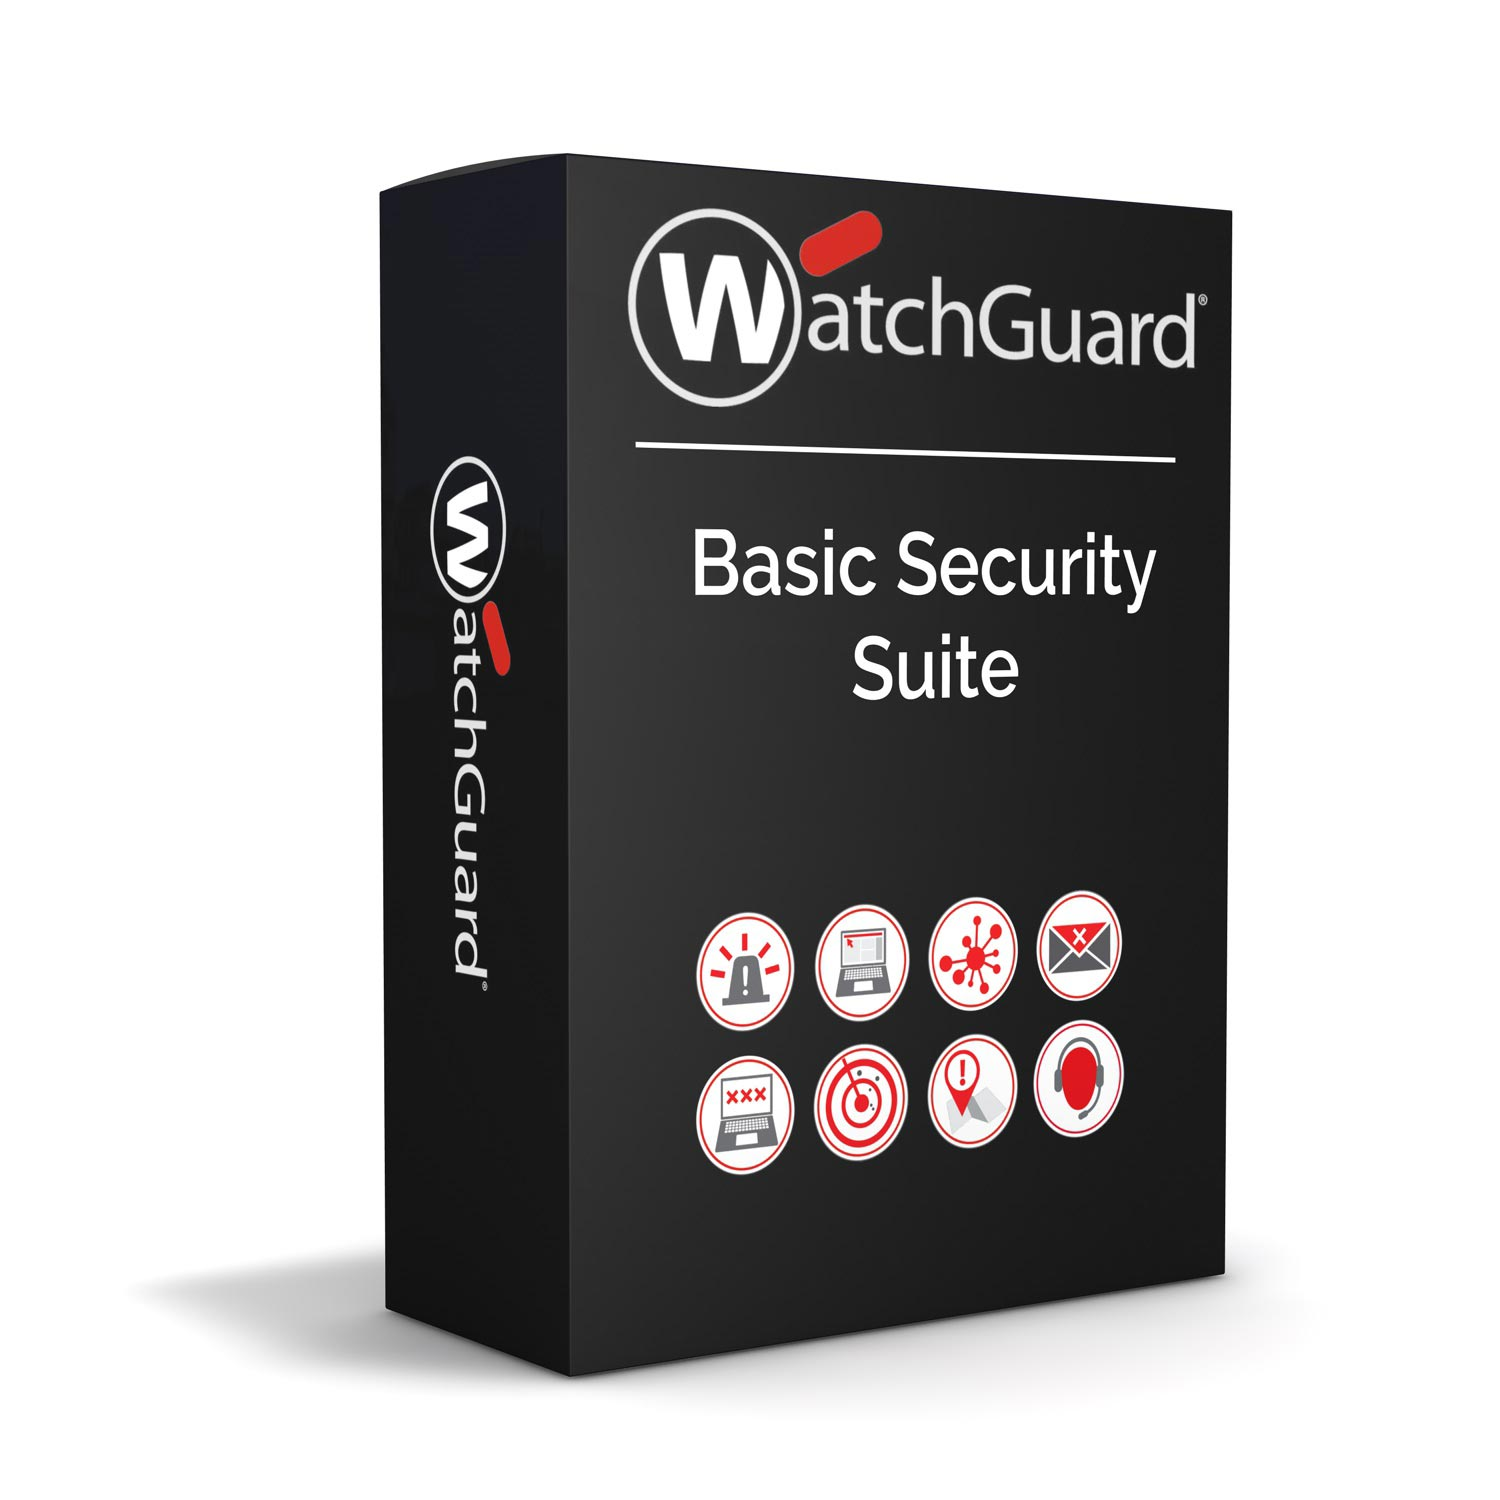 WatchGuard Basic Security Suite Renewal/Upgrade 1-yr for Firebox M5600